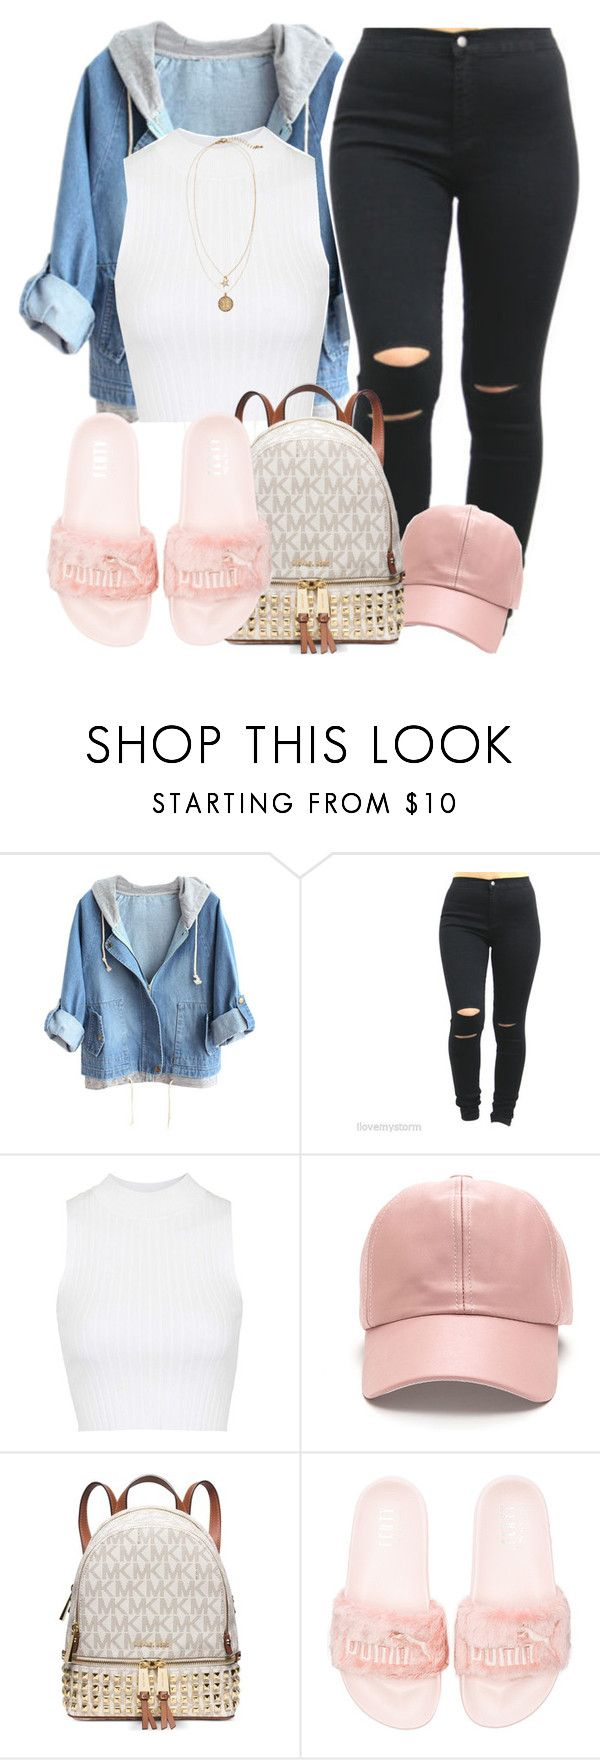 """""""Untitled #188"""" by cocochanelox ❤ liked on Polyvore featuring Topshop, Michael Kors, Puma and H&M"""